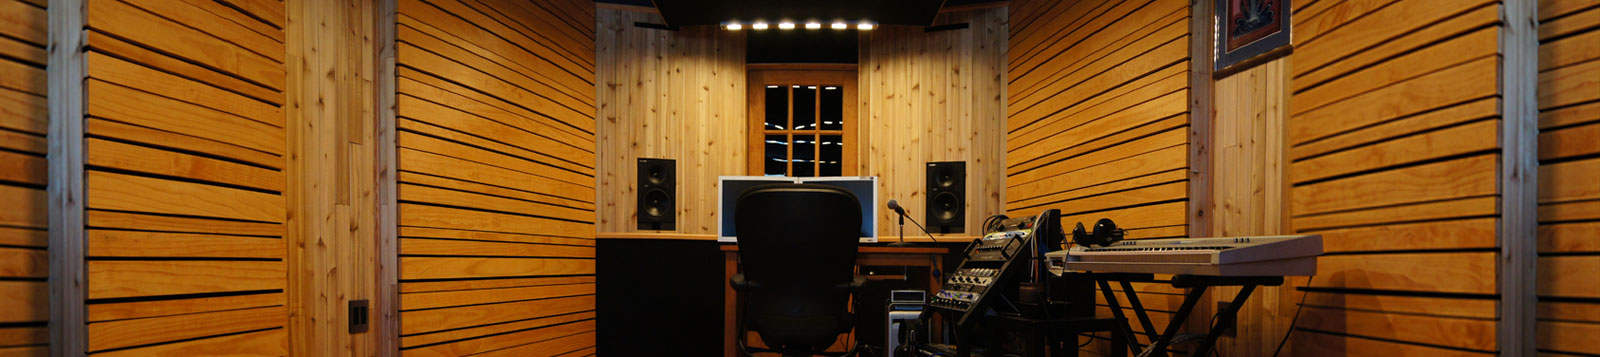 The Stiz Recording Studio of NJ